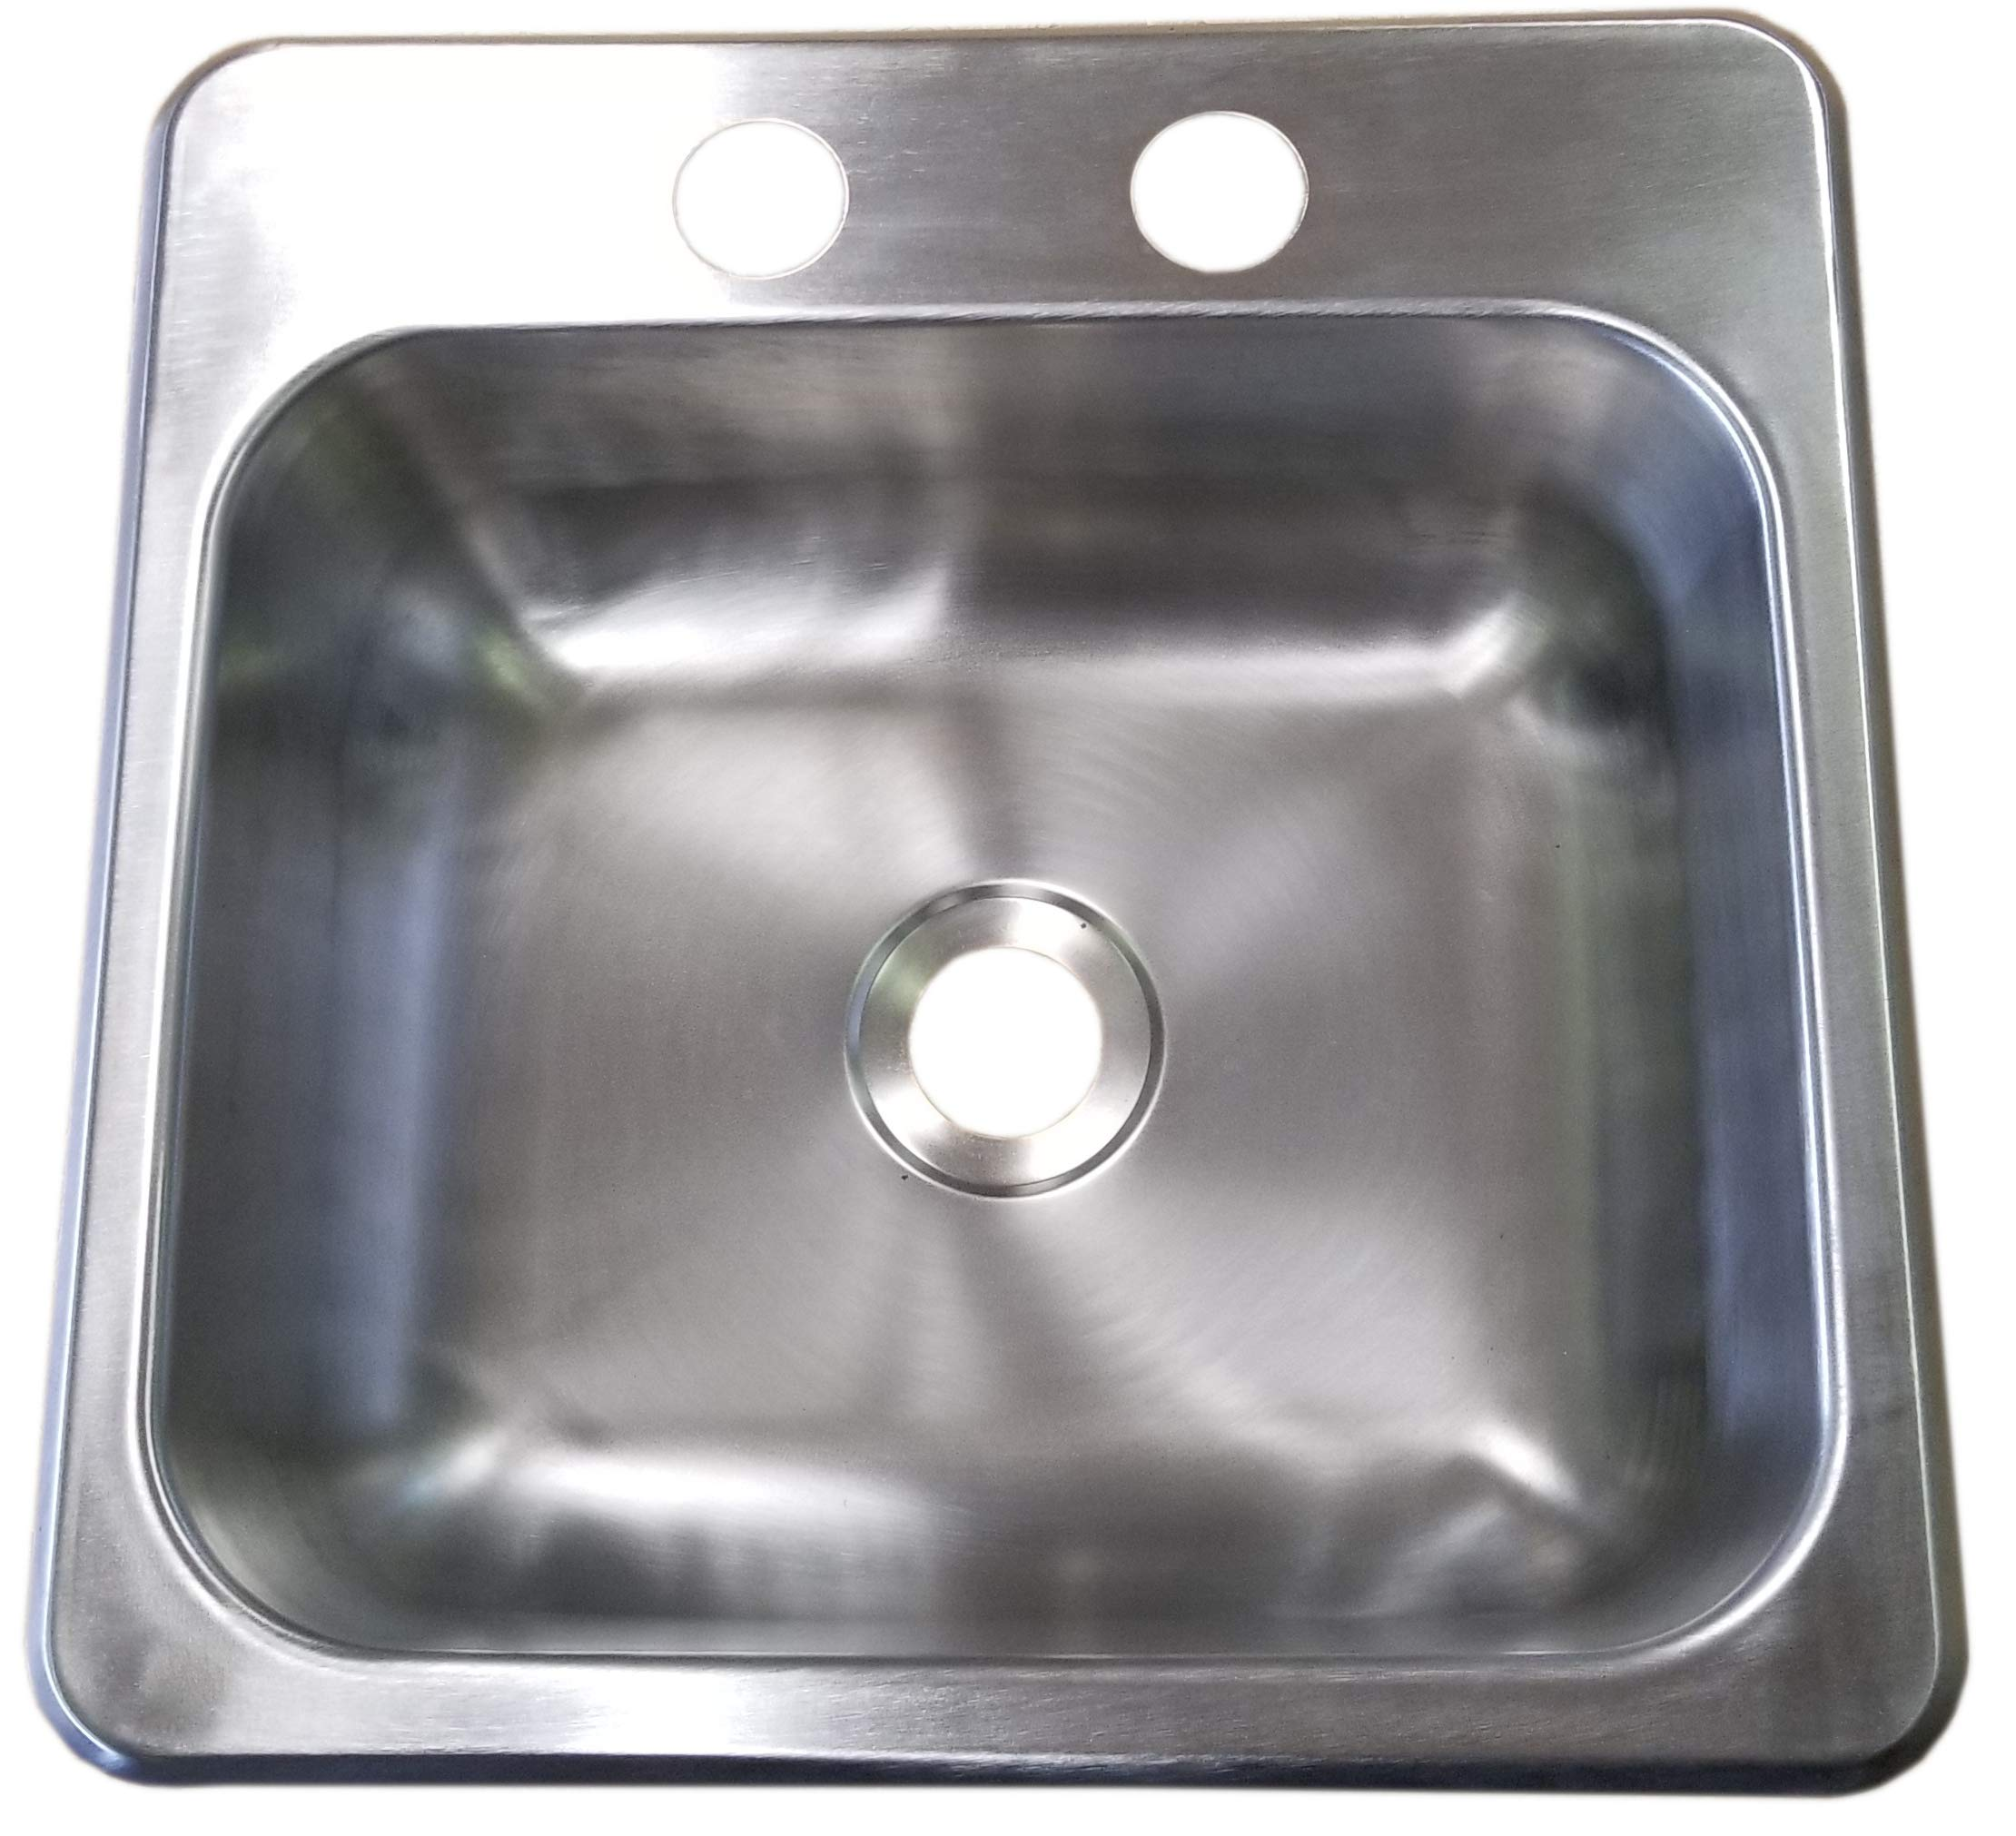 Heng's 15 x 15 x 5 RV Stainless Steel Sink Single Bowl 2 Holes for Faucet